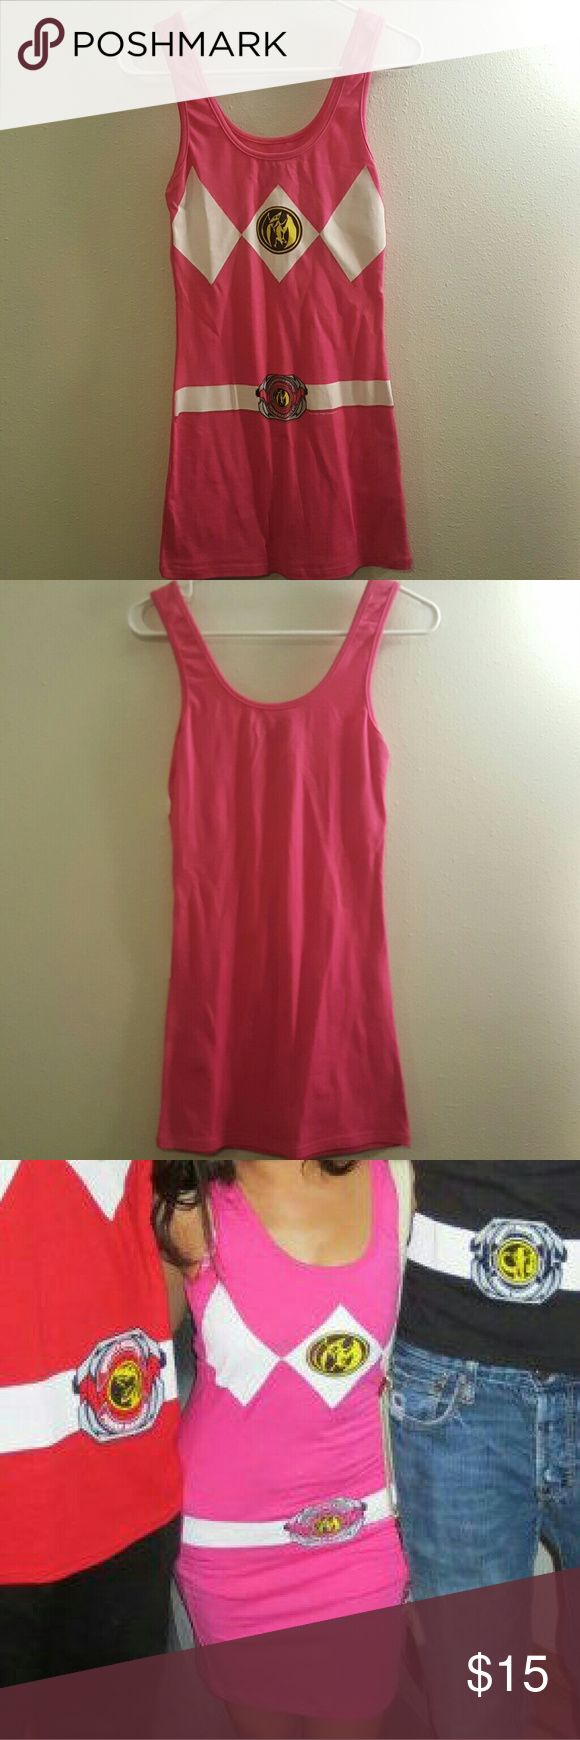 Pink Power Rangers dress For a themed party or Halloween! Says M but fits like a S. Worn once! Dresses Mini